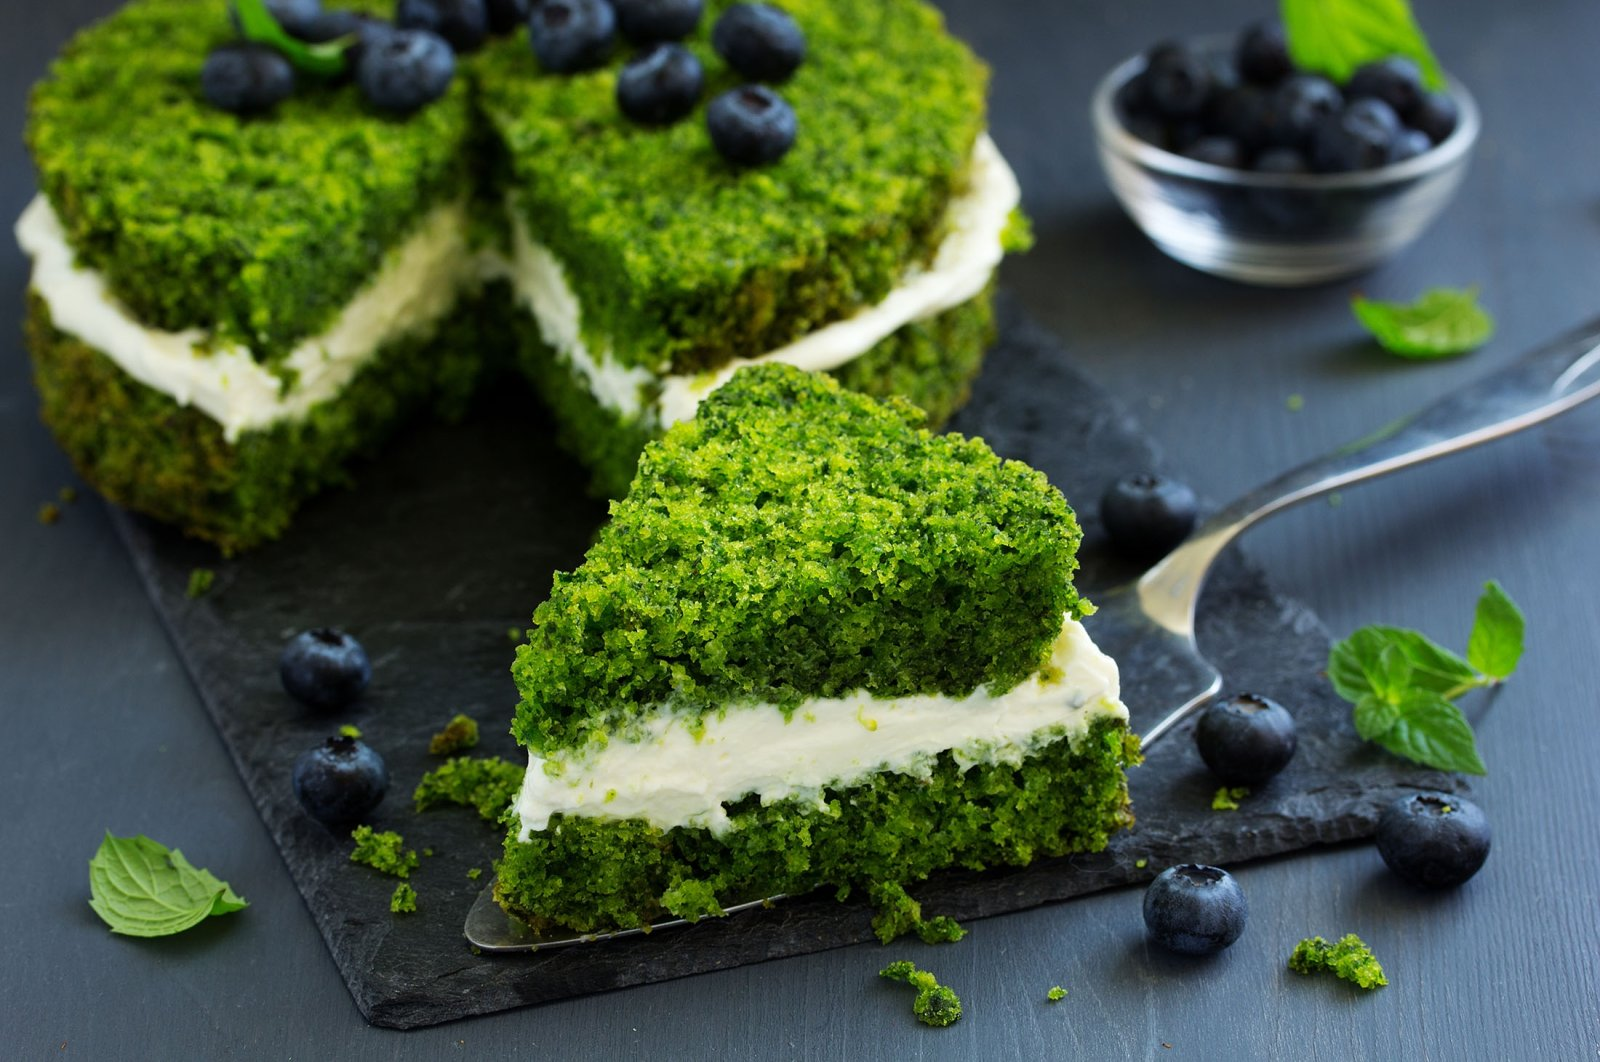 Although spinach may sound like an odd ingredient in a dessert, you'll be pleasantly surprised. (Shutterstock Photo)